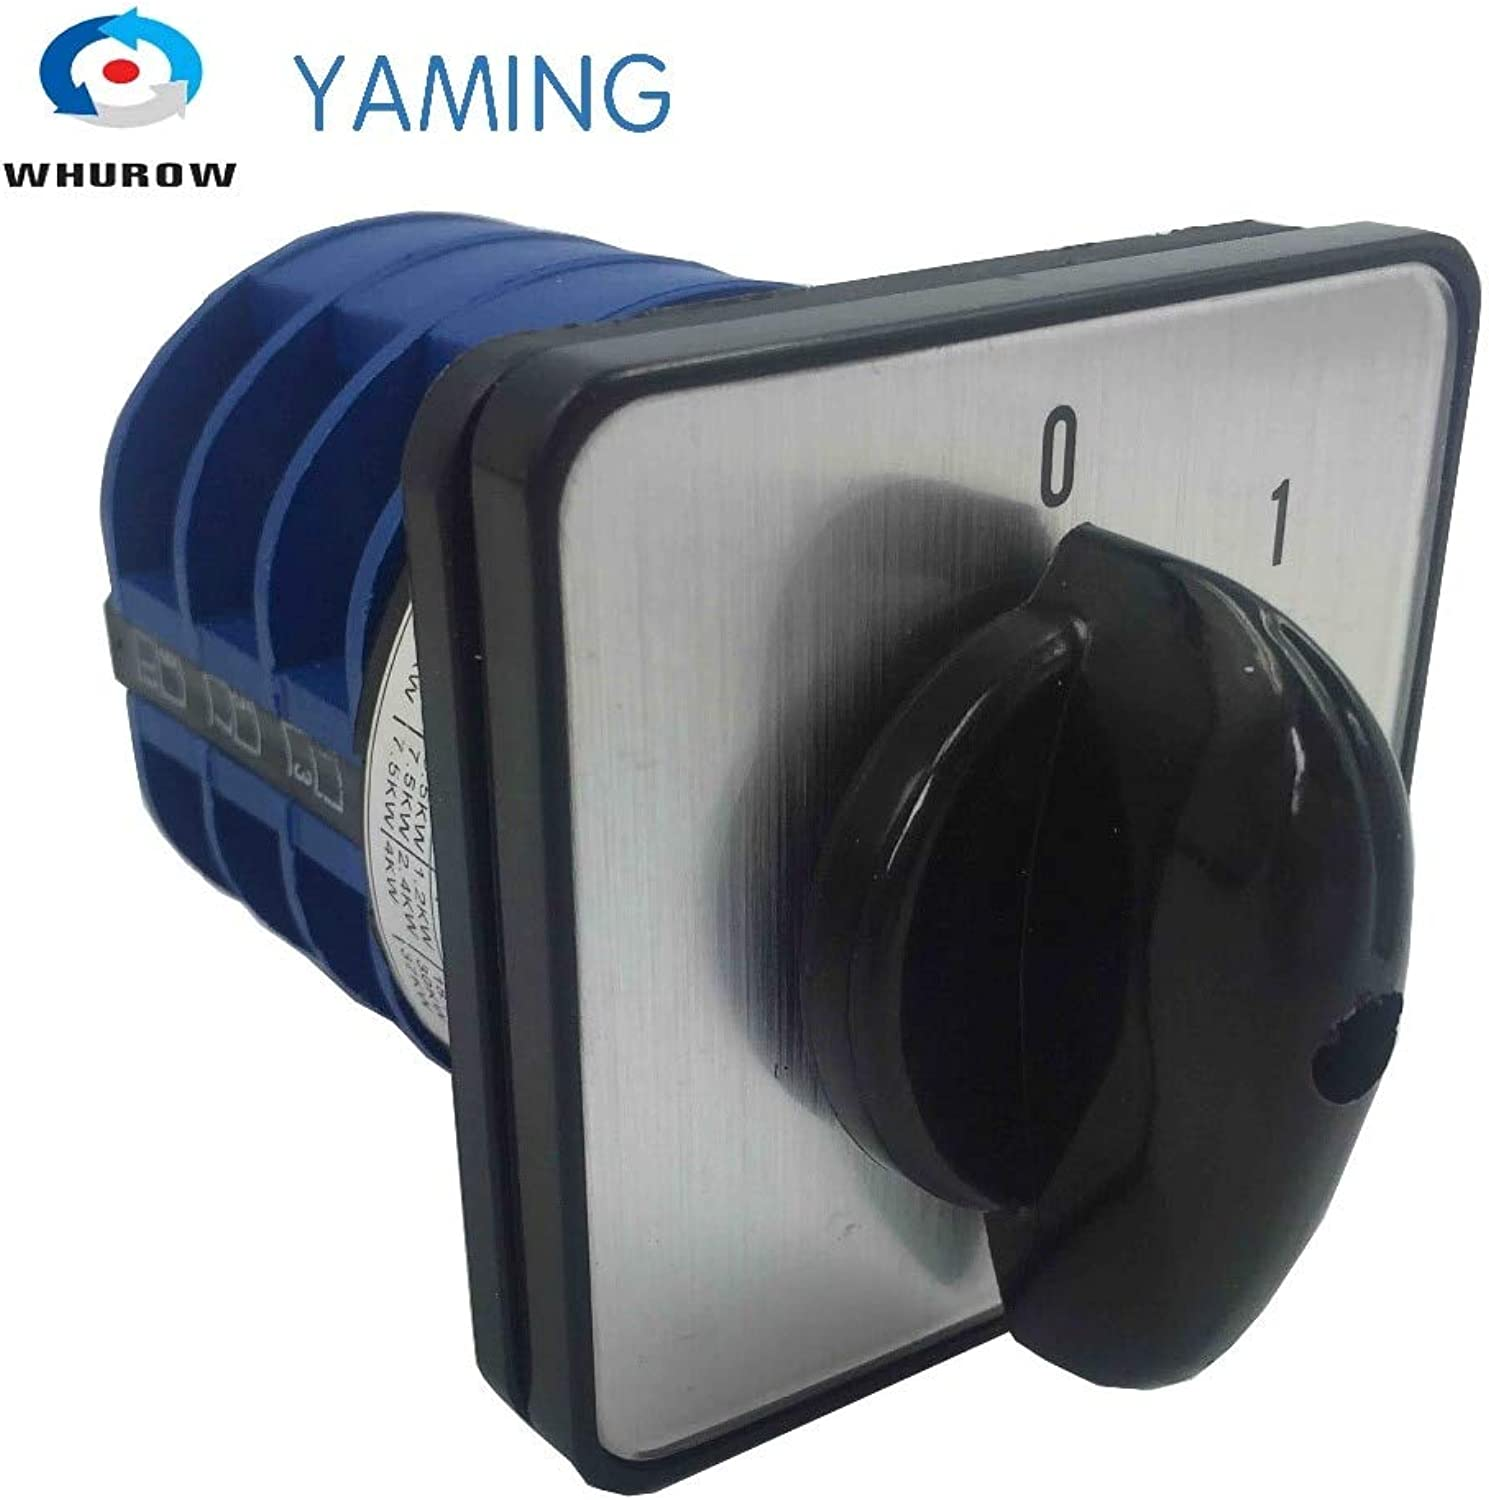 Yaming Electric LW2632 3 Universal Changeover redary cam Switch 660V 32A 3 Poles 2 Position 01 onOff Control Motor